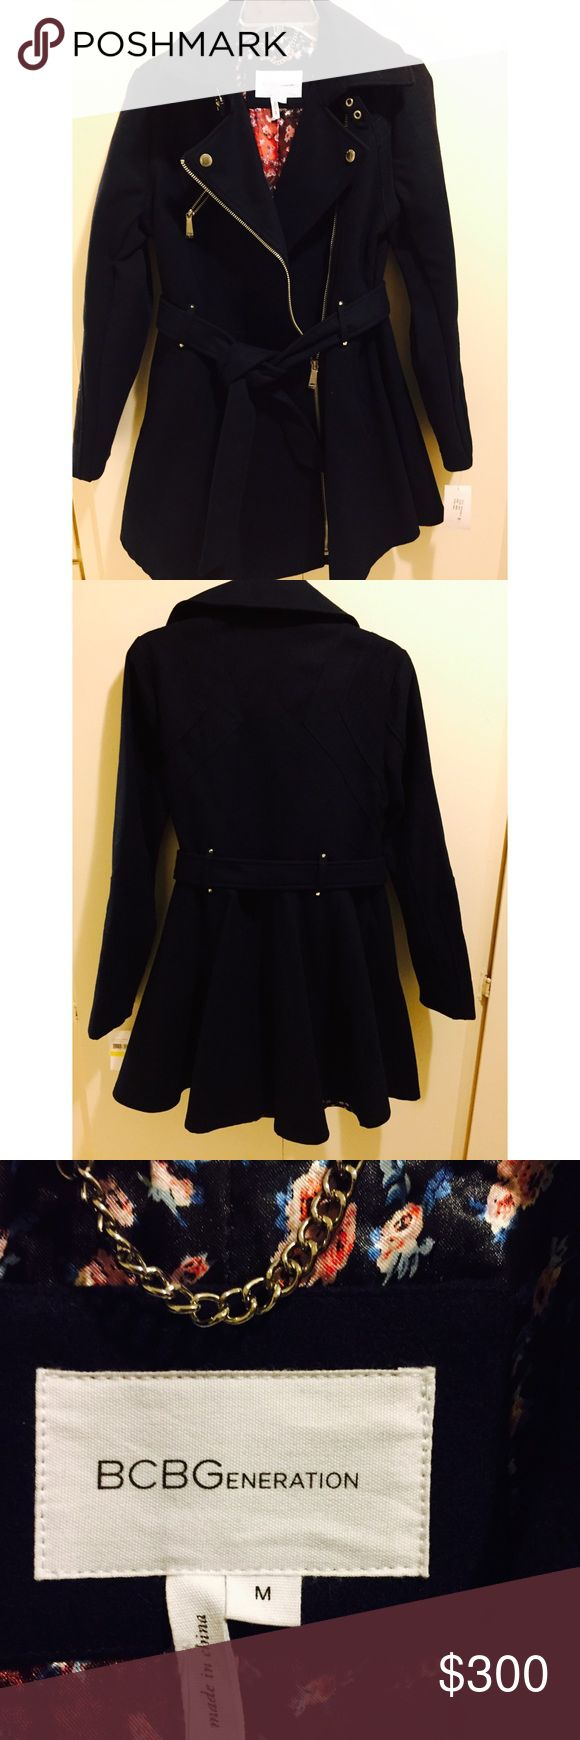 NWT BCBGeneration Coat Brand new BCBG coat, color navy. BCBGeneration Jackets & Coats